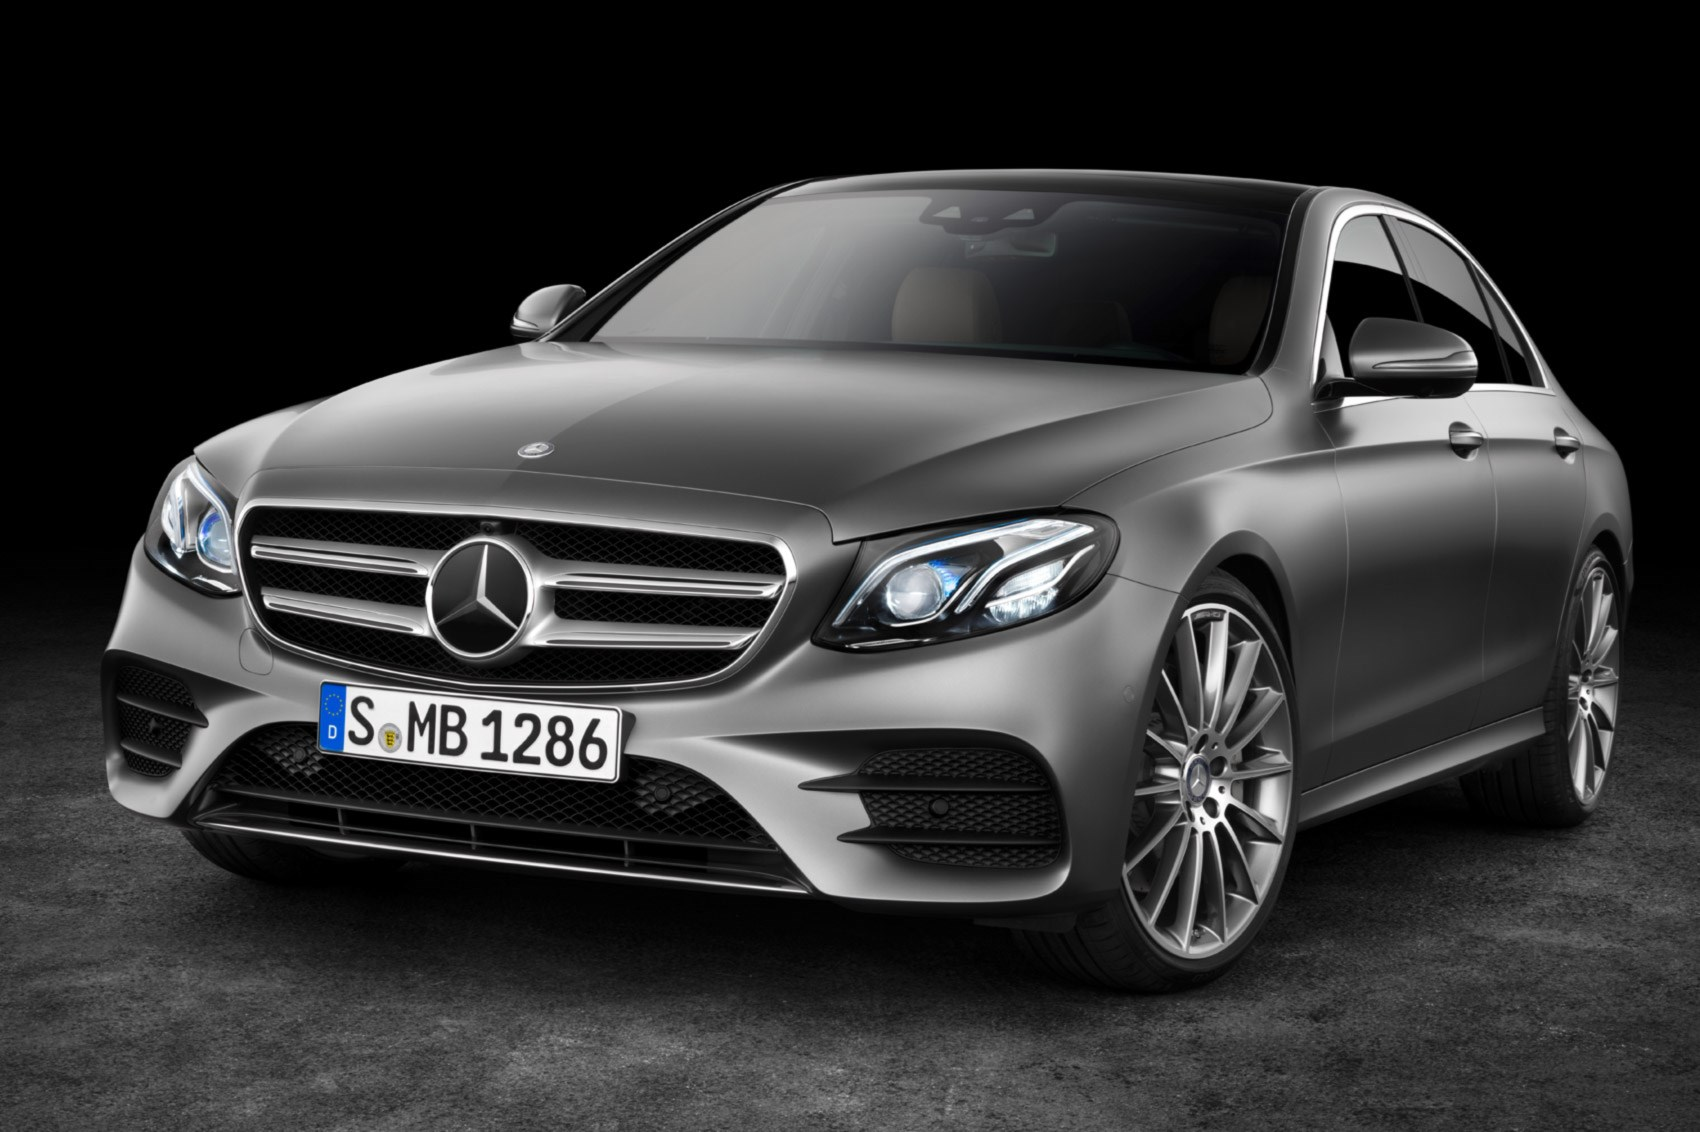 new mercedes benz e class unveiled at 2016 detroit motor show by car magazine. Black Bedroom Furniture Sets. Home Design Ideas